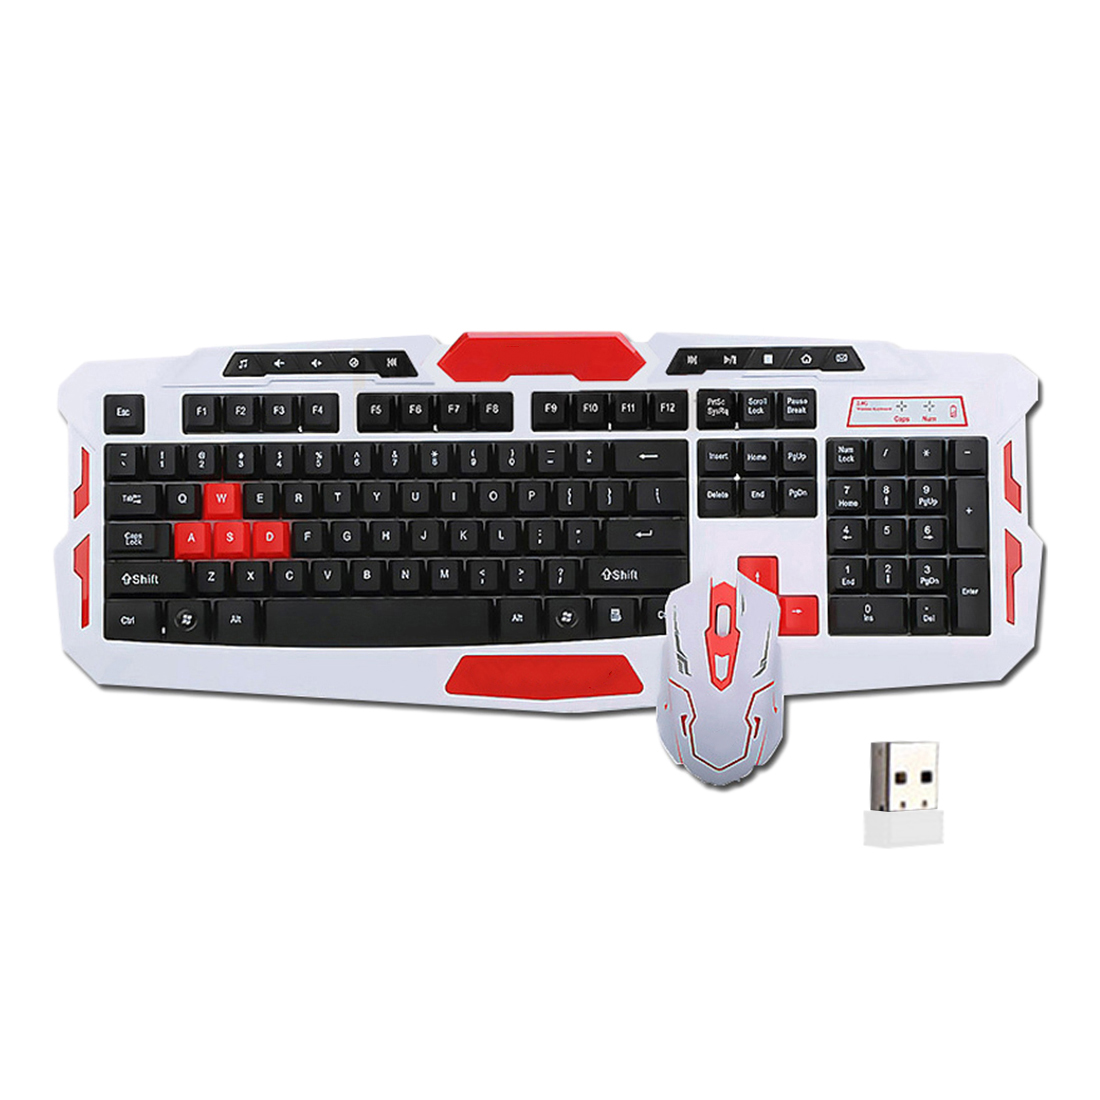 Etmakit New Wireless Keyboard Mouse Set Etmakit New Wireless Keyboard Mouse Set HTB1KAmWSVXXXXbpXXXXq6xXFXXXn